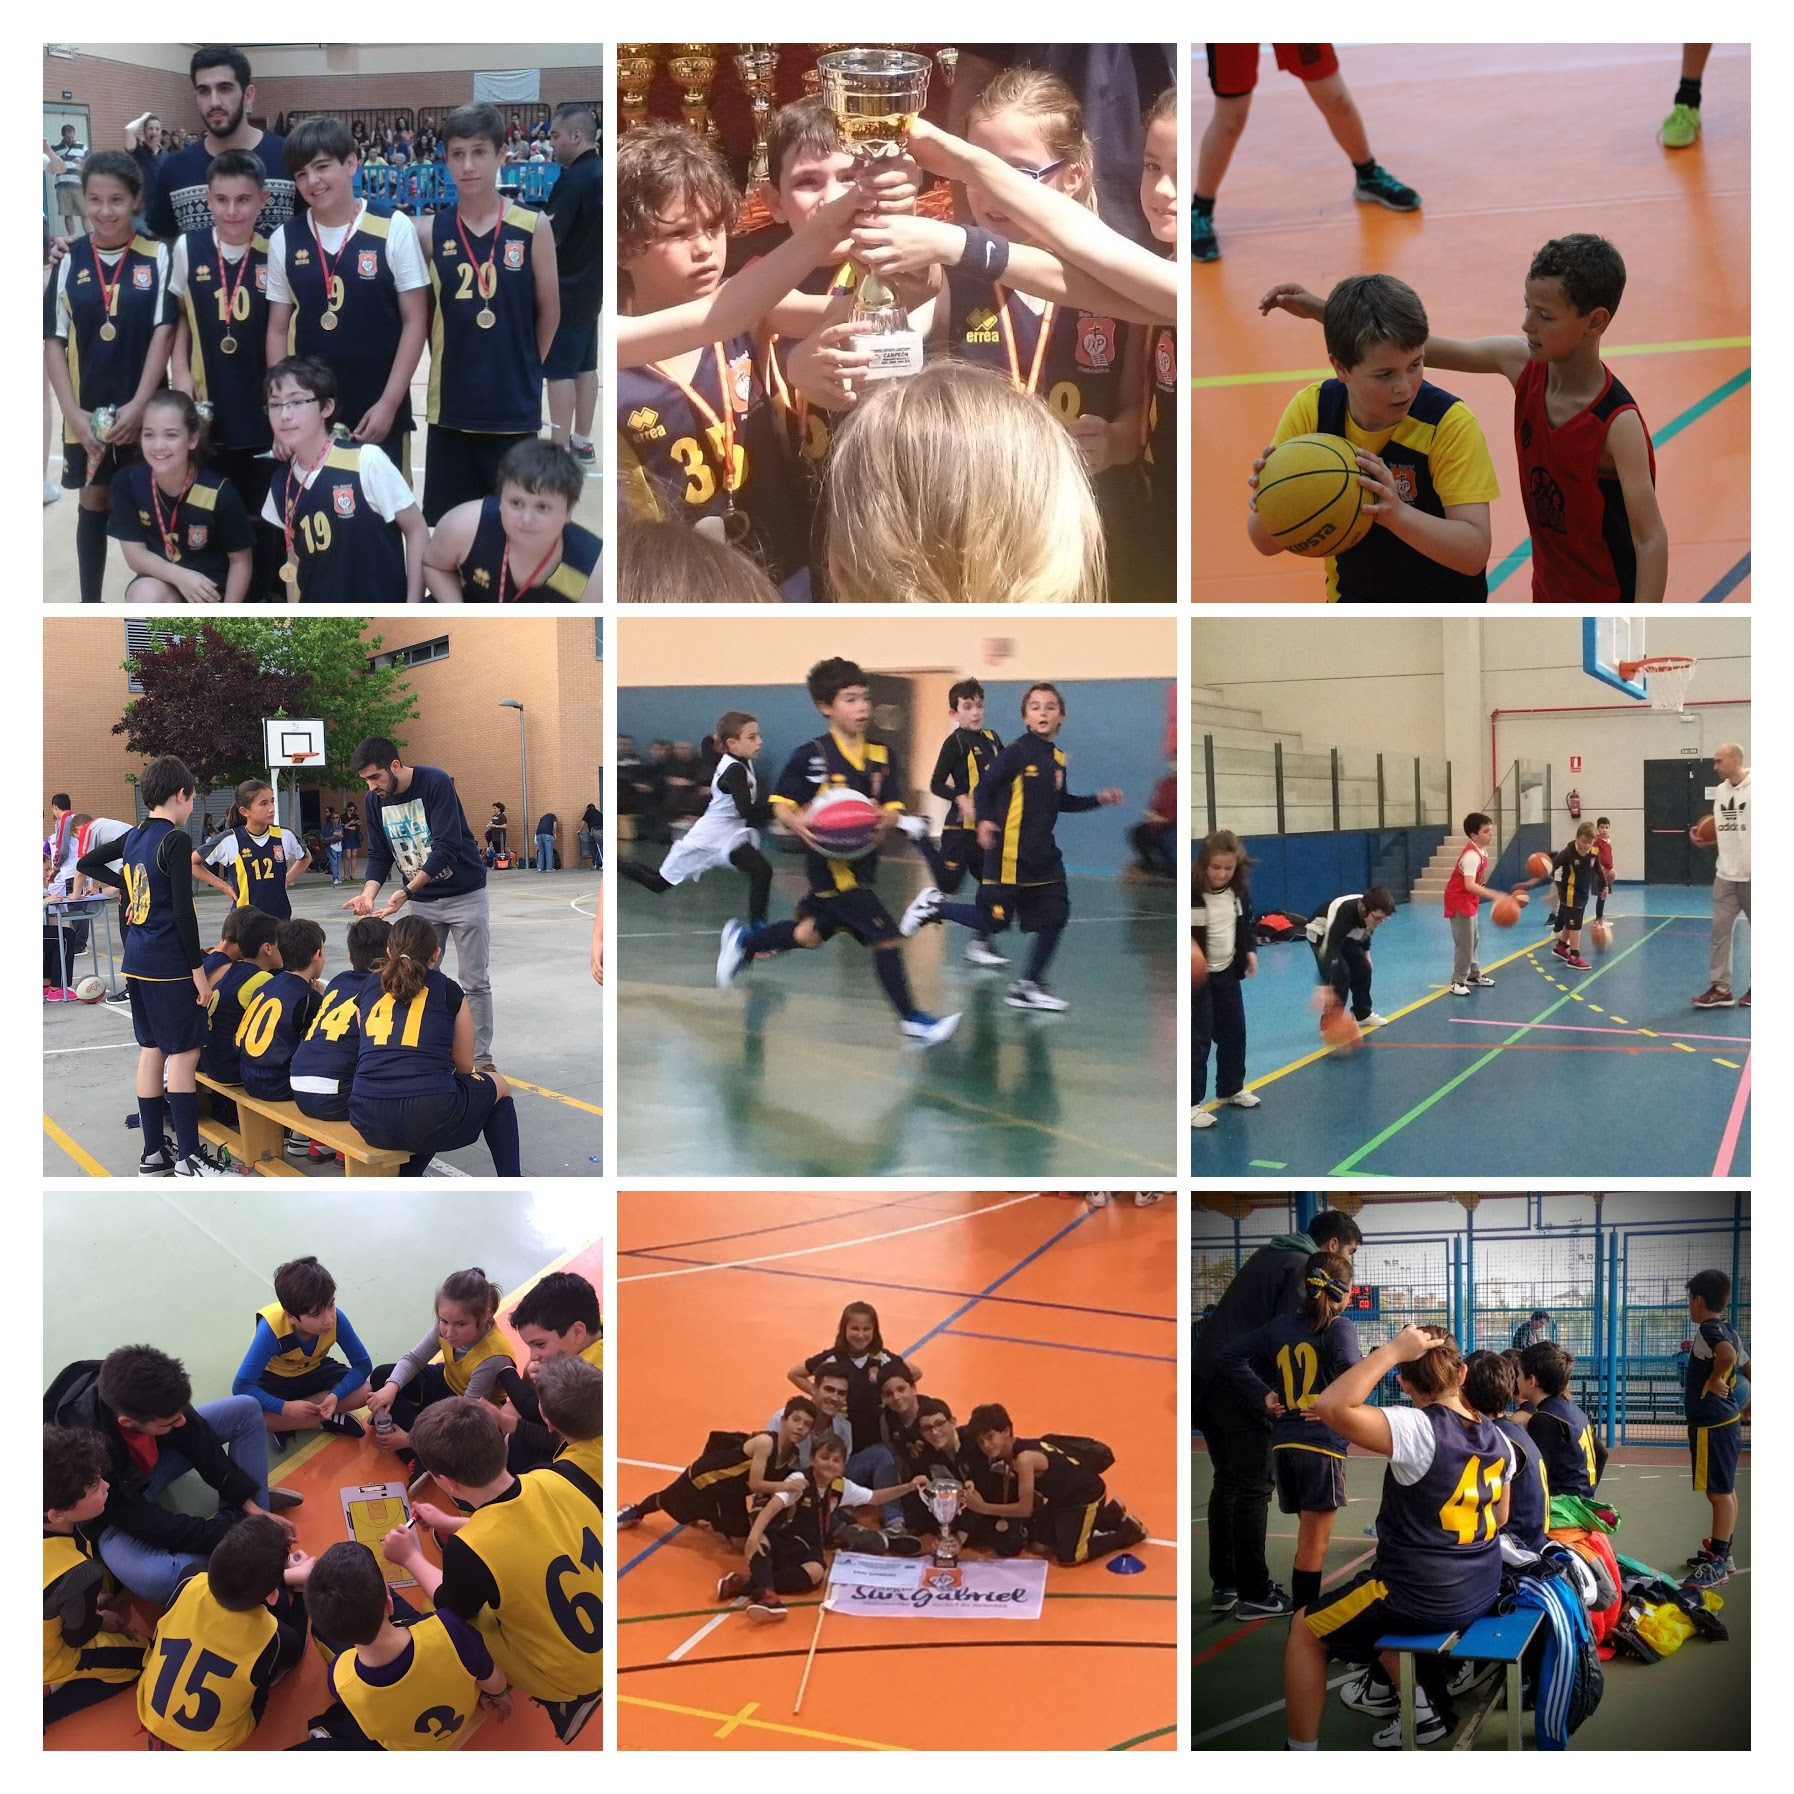 Baloncesto web collage